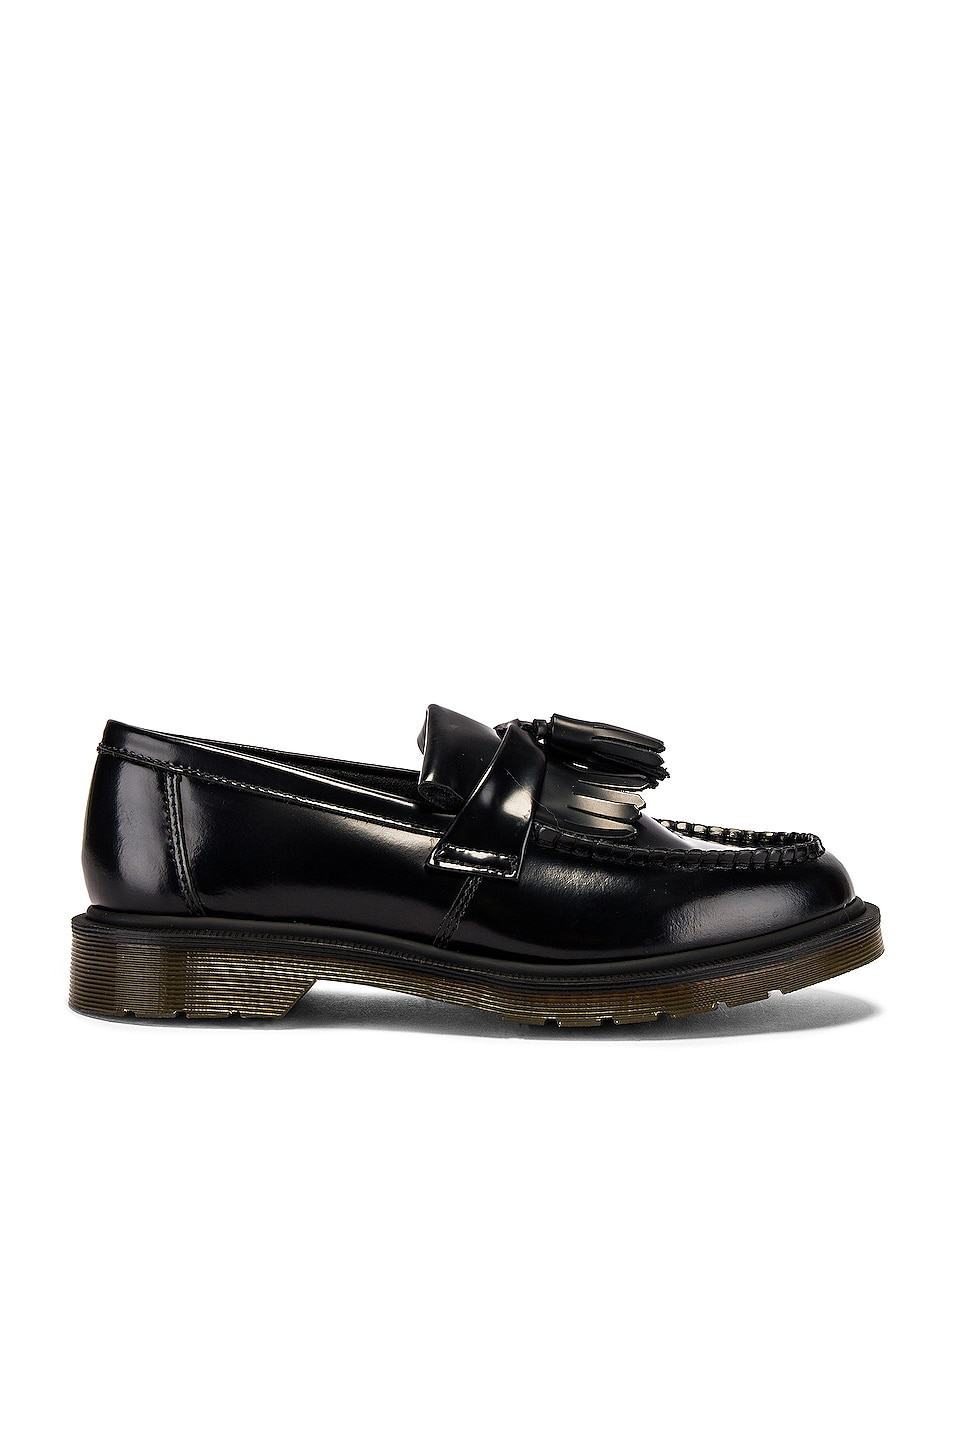 DR. MARTENS by Adrian, available on fwrd.com for $130 Kaia Gerber Shoes Exact Product